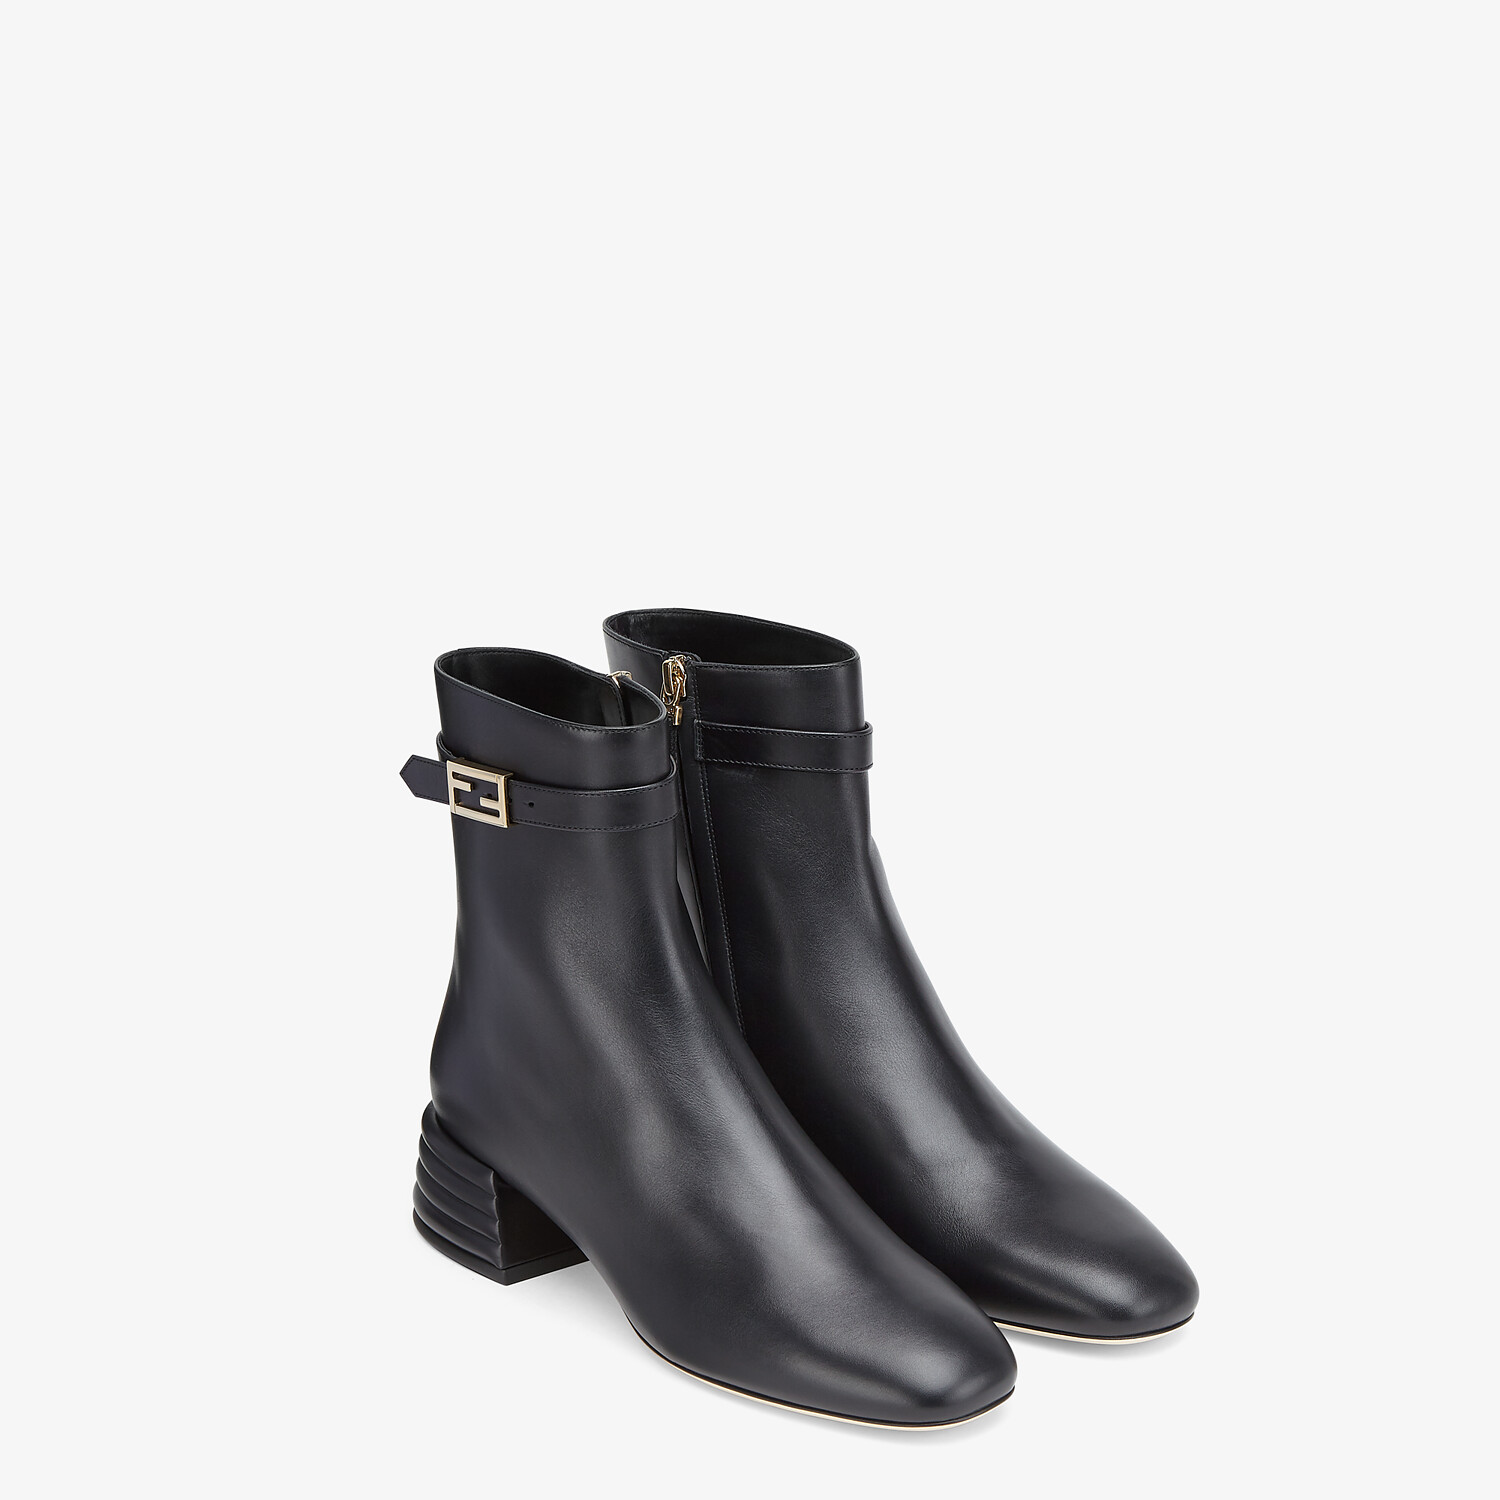 FENDI ANKLE BOOTS - Black leather booties - view 4 detail